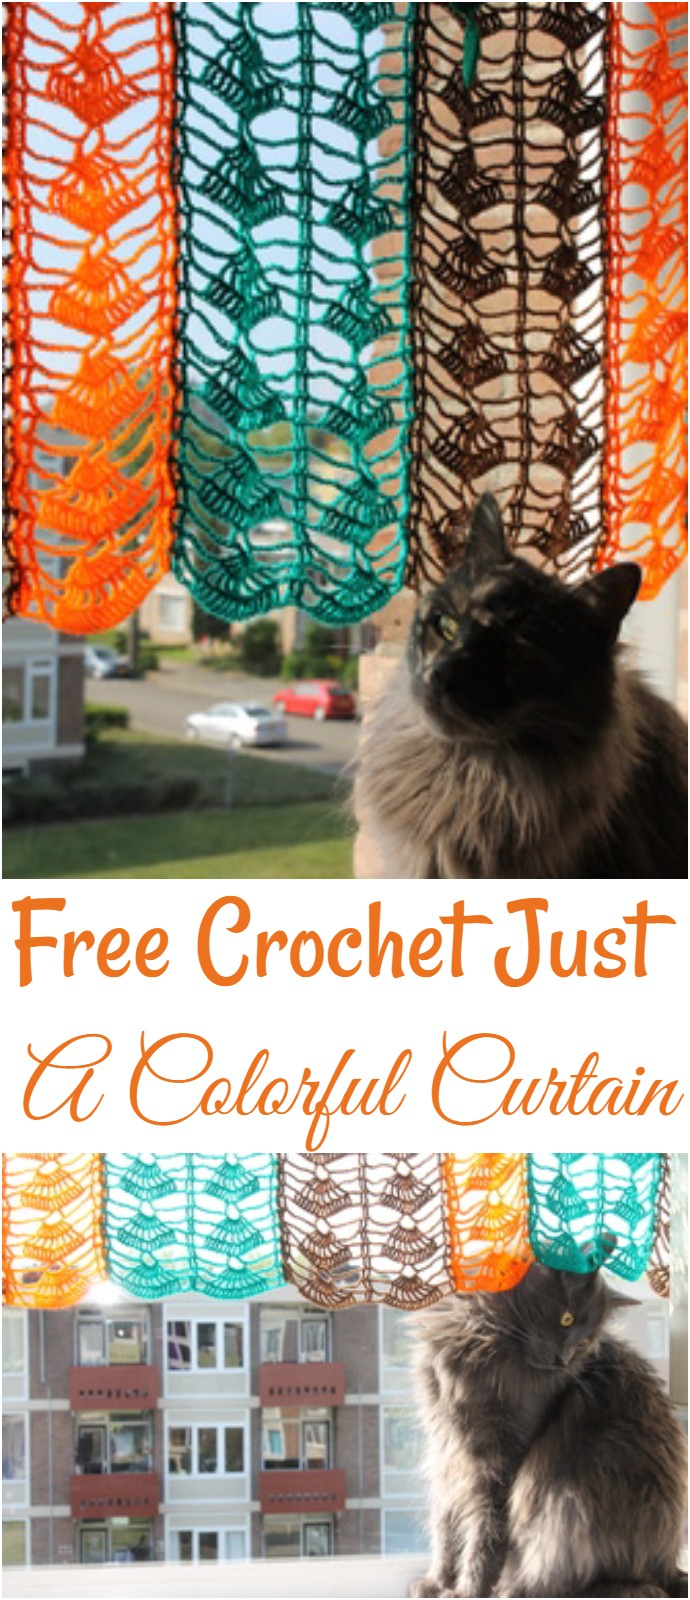 Free Crochet Just A Colorful Curtain